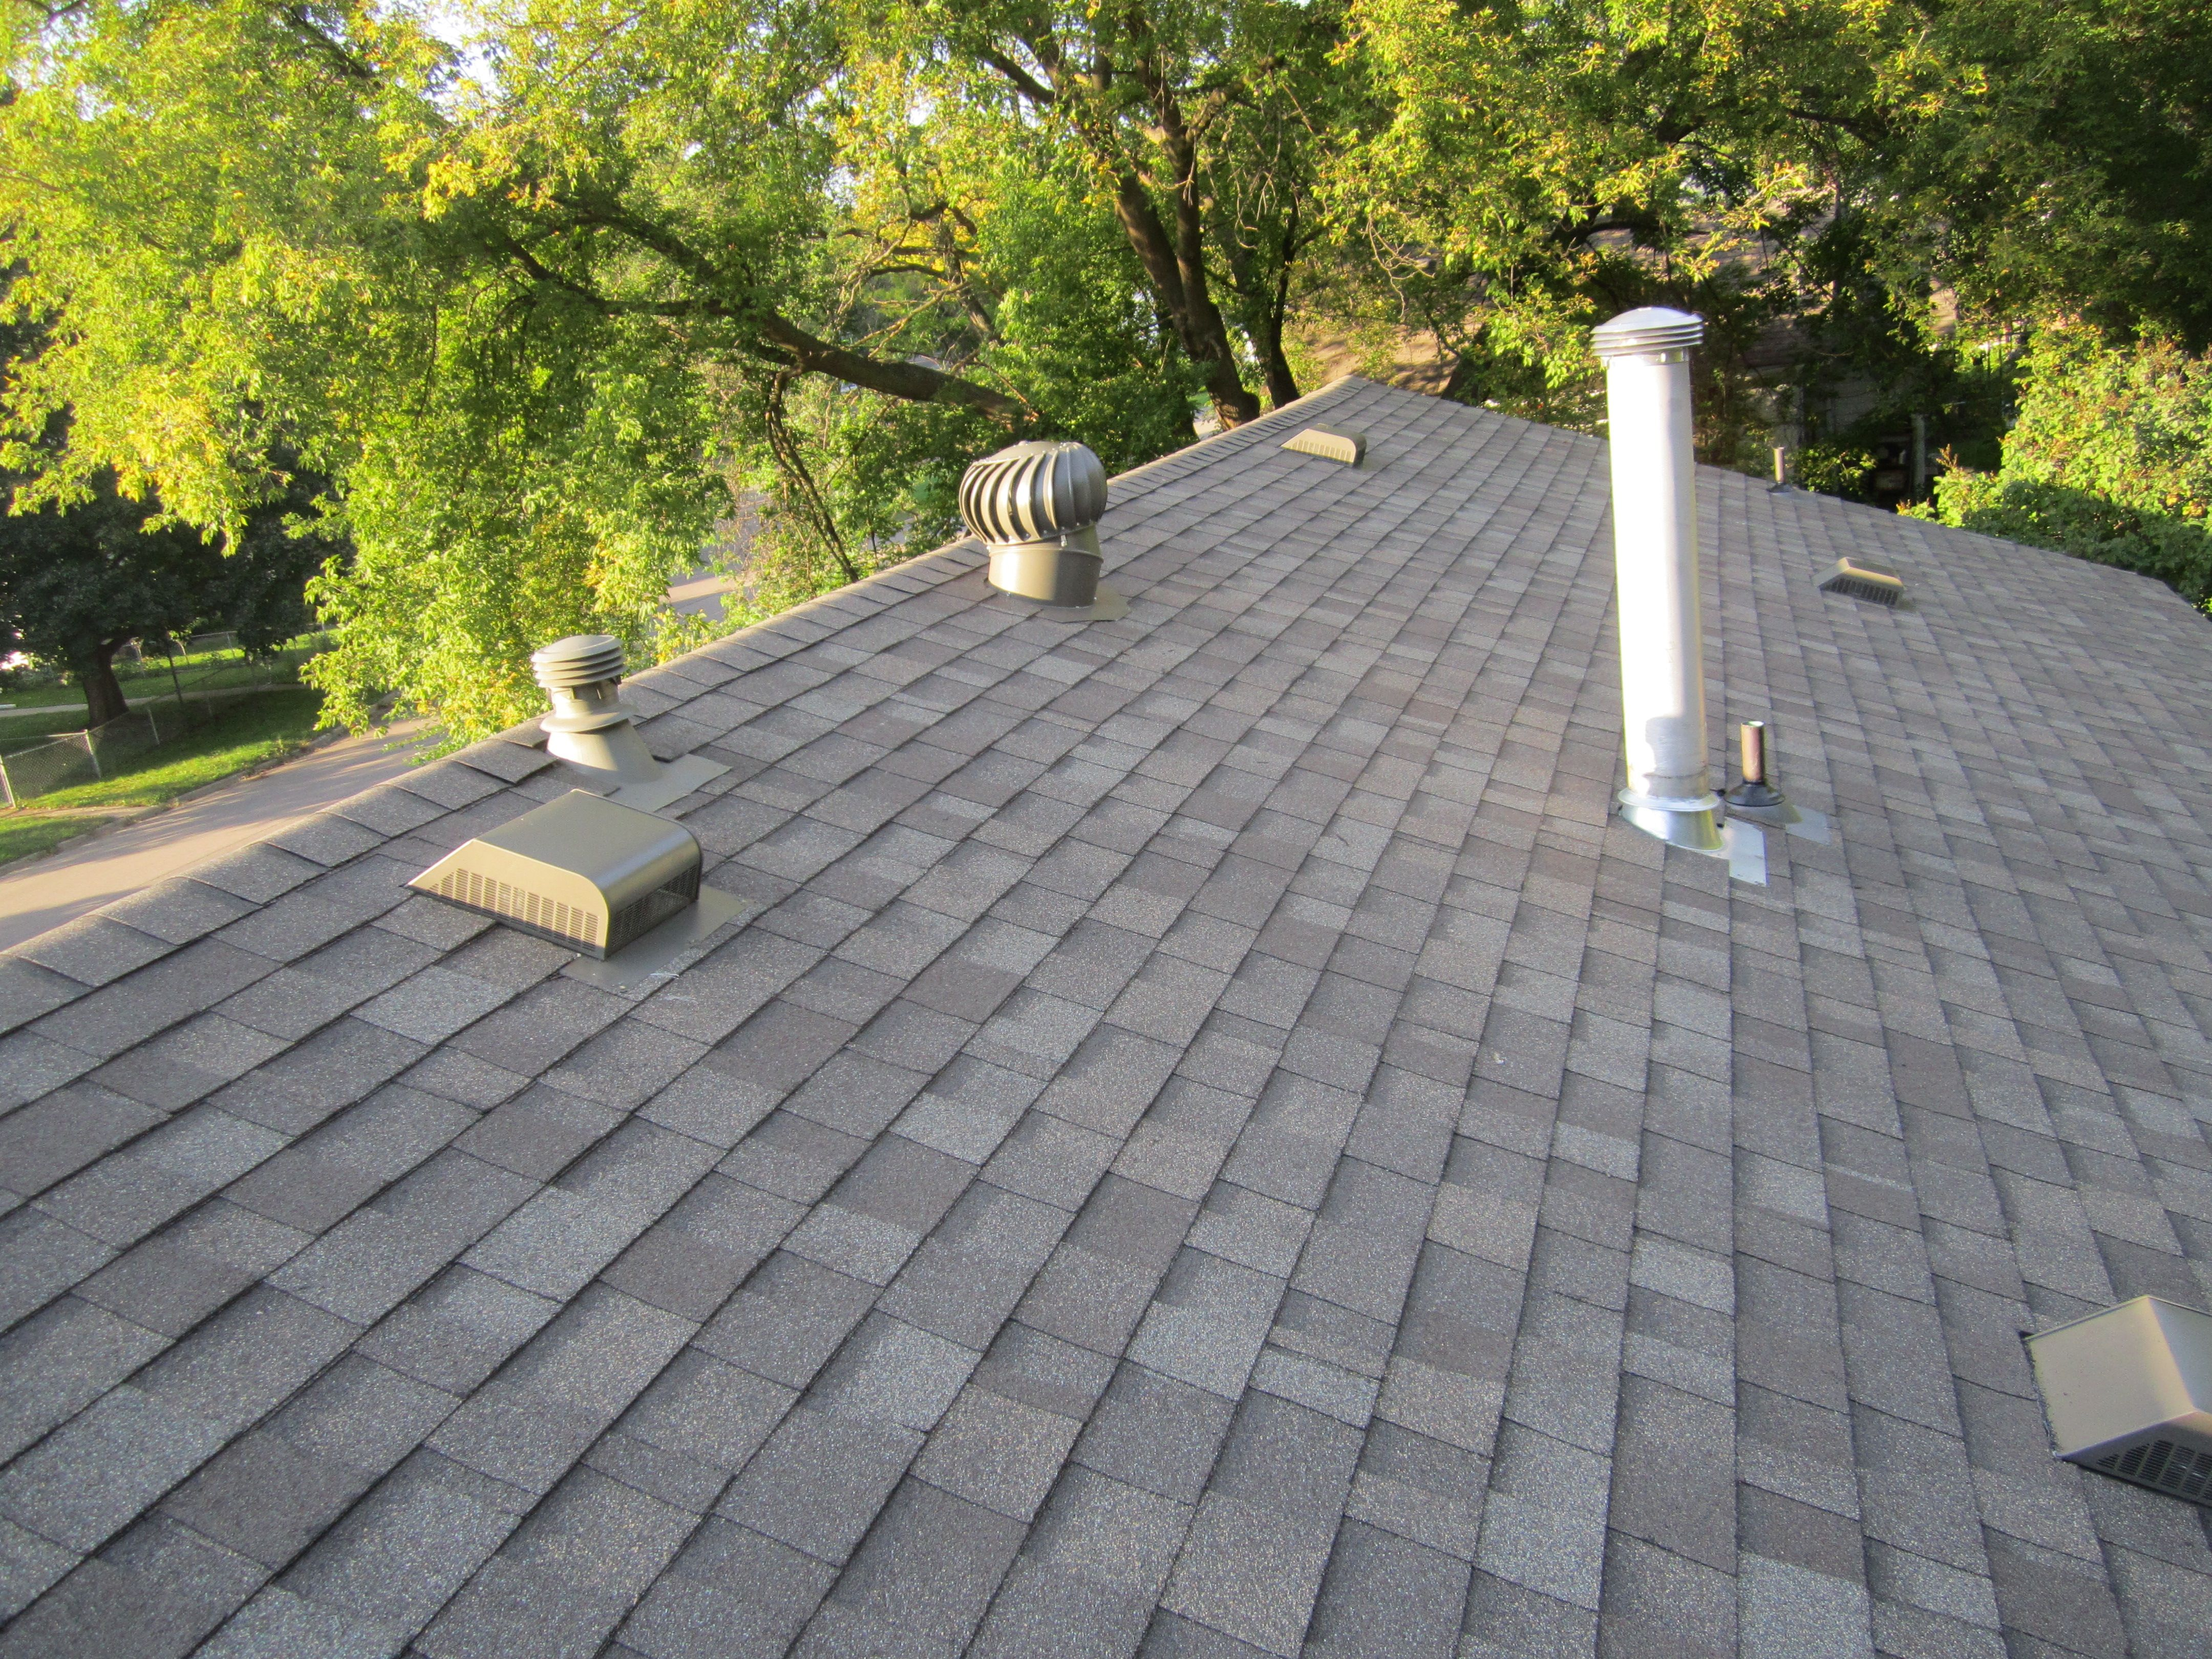 Best Asphalt Shingle Roof In Robbinsdale Mn Owens Corning Driftwood Color Roofing Pinterest 400 x 300